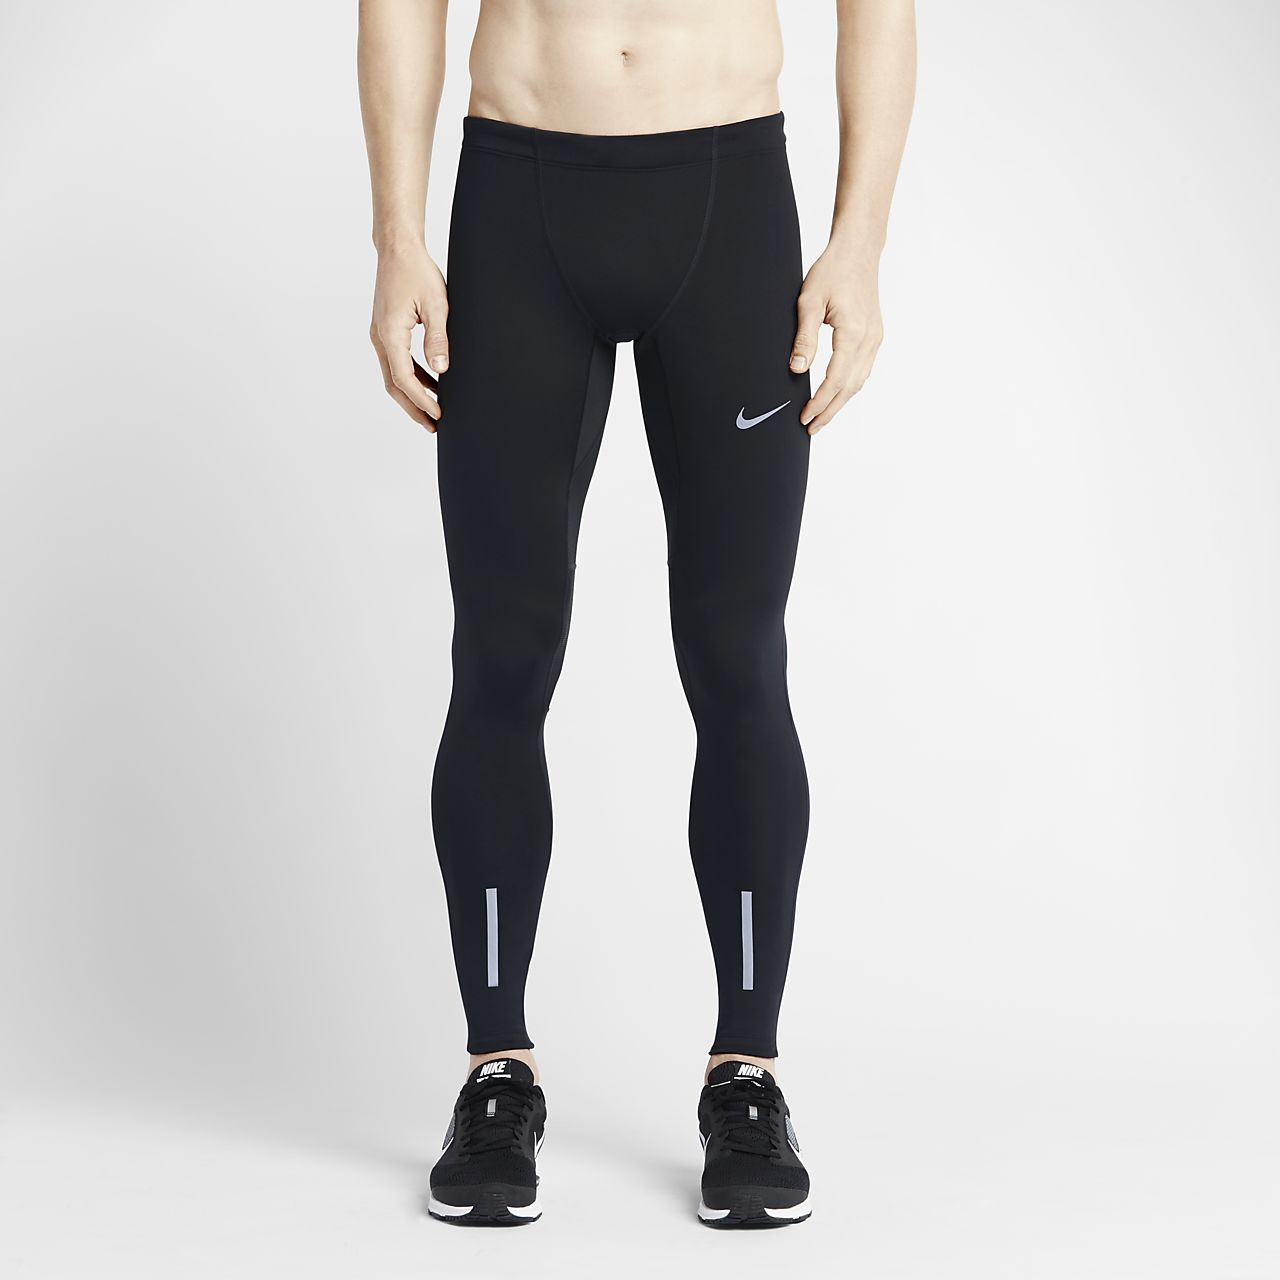 low priced bfa64 ba500 Tights da running Nike Power Tech - Uomo. CH